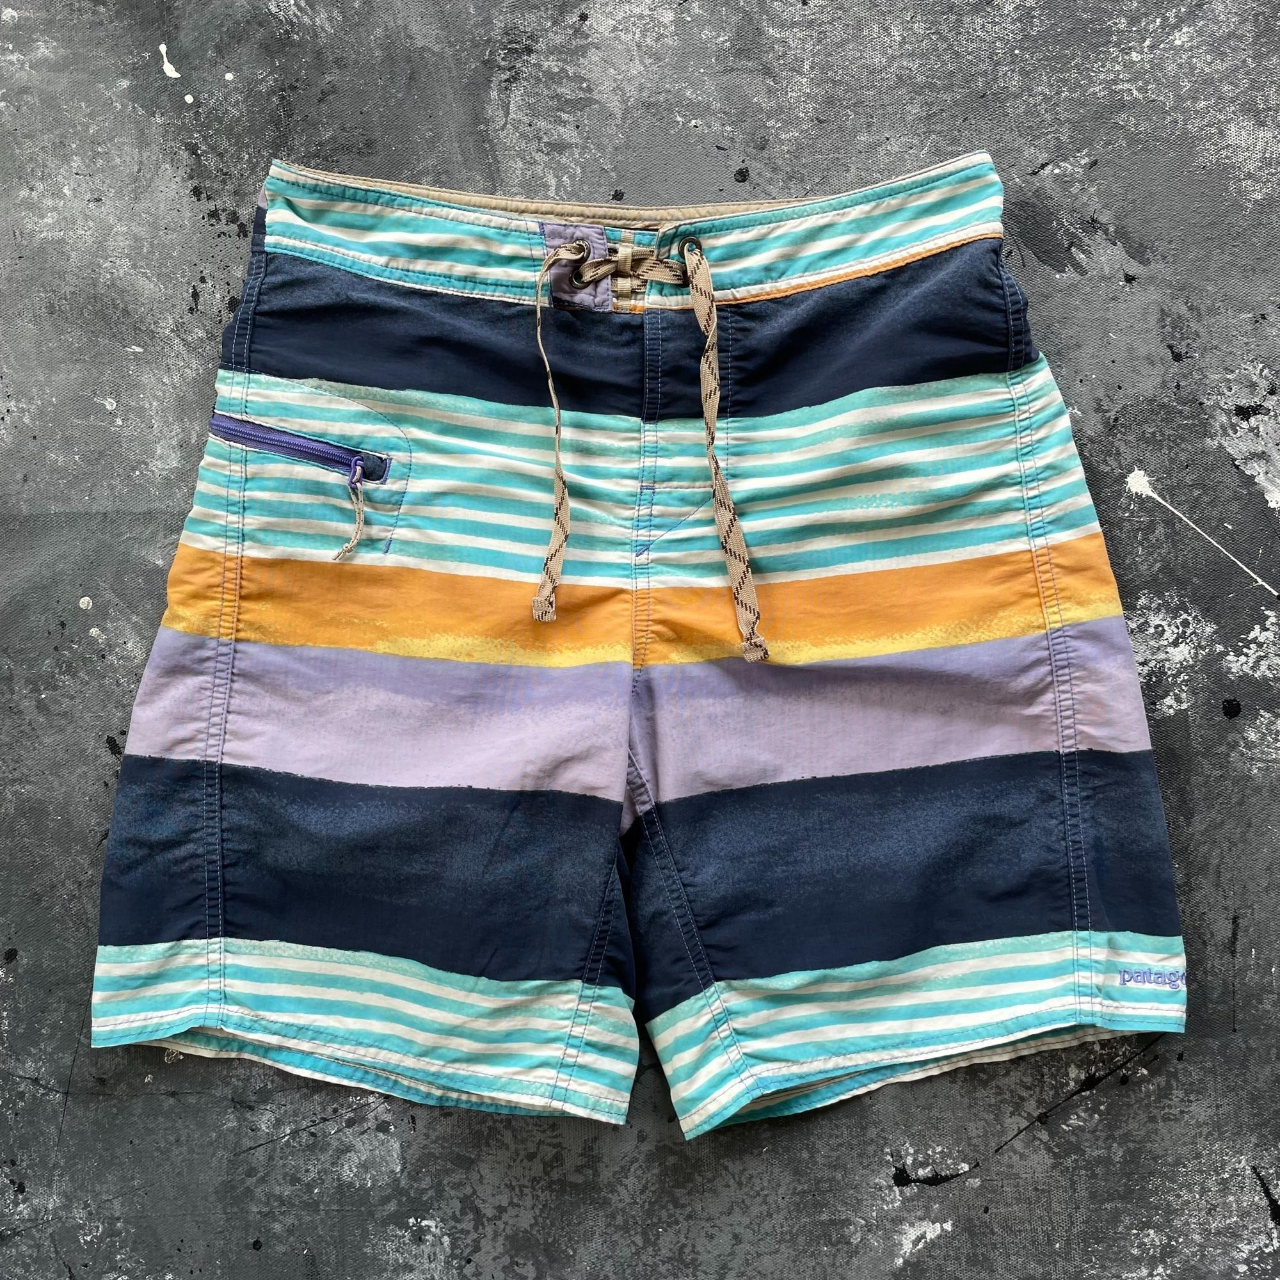 Product Image 1 - Patagonia swim trunks in a